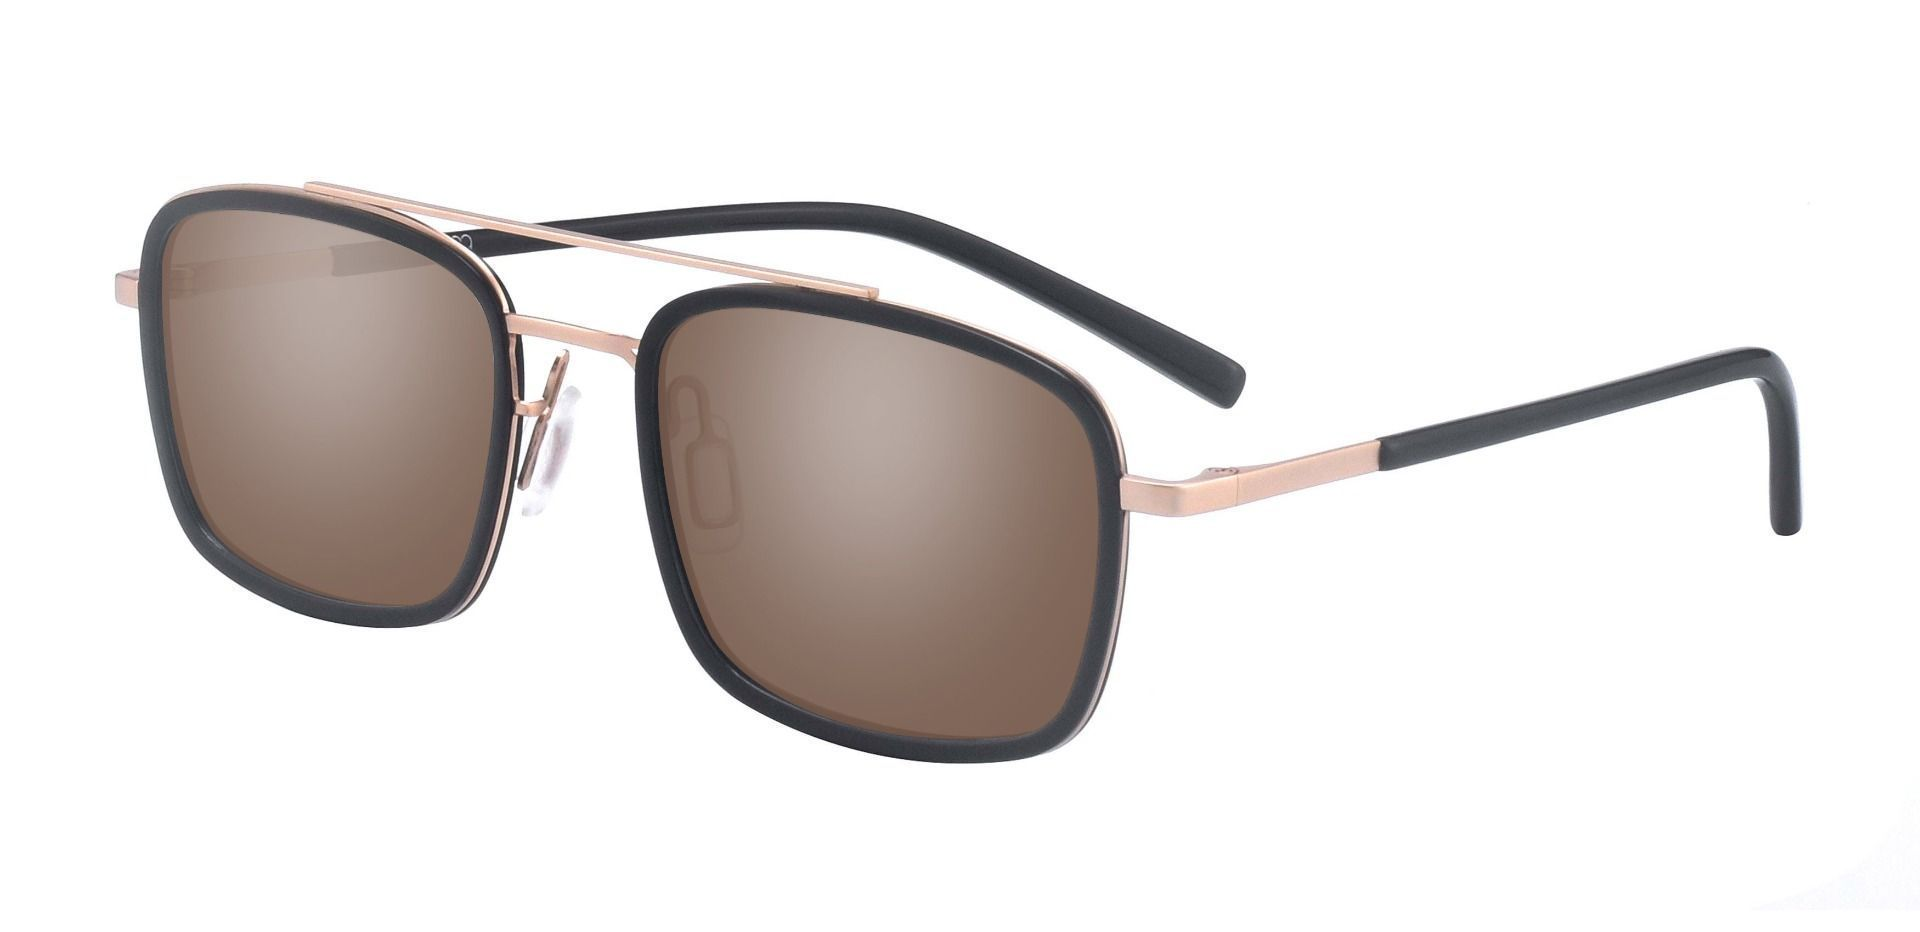 Margot  Aviator Prescription Sunglasses - Black Frame With Brown Lenses